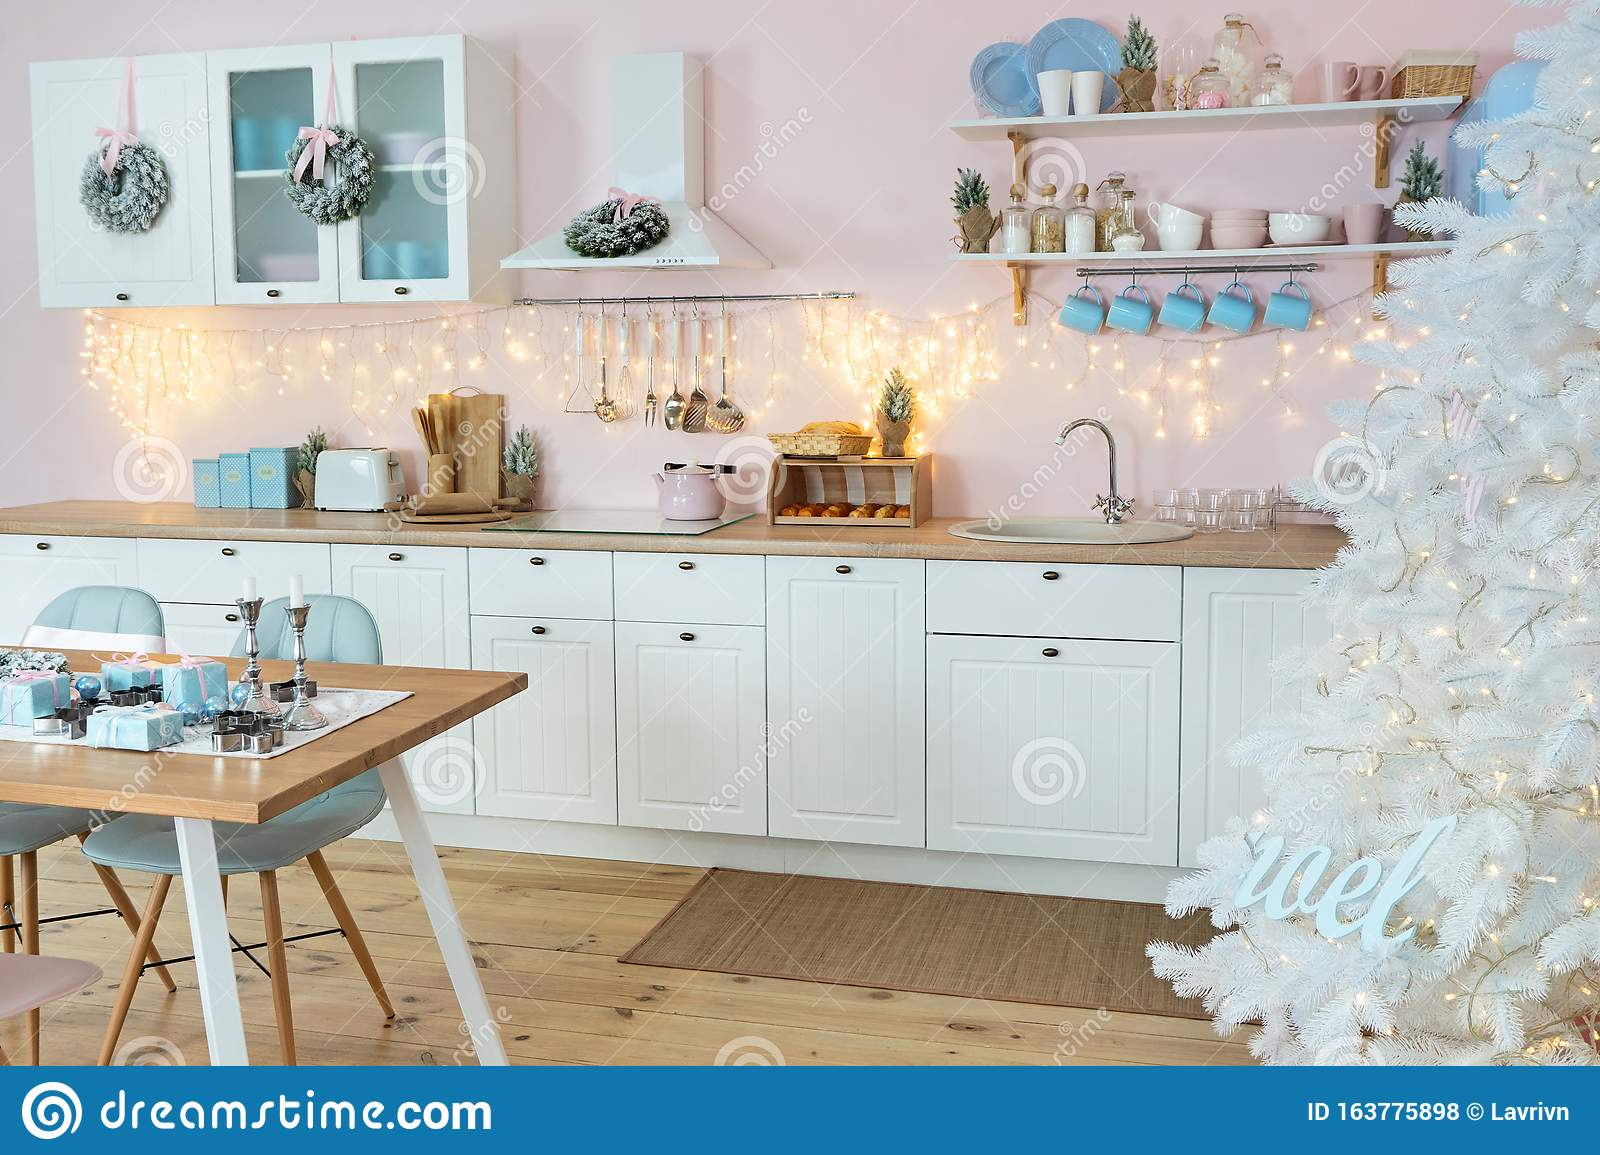 2 098 Christmas Lights Food Kitchen Photos Free Royalty Free Stock Photos From Dreamstime